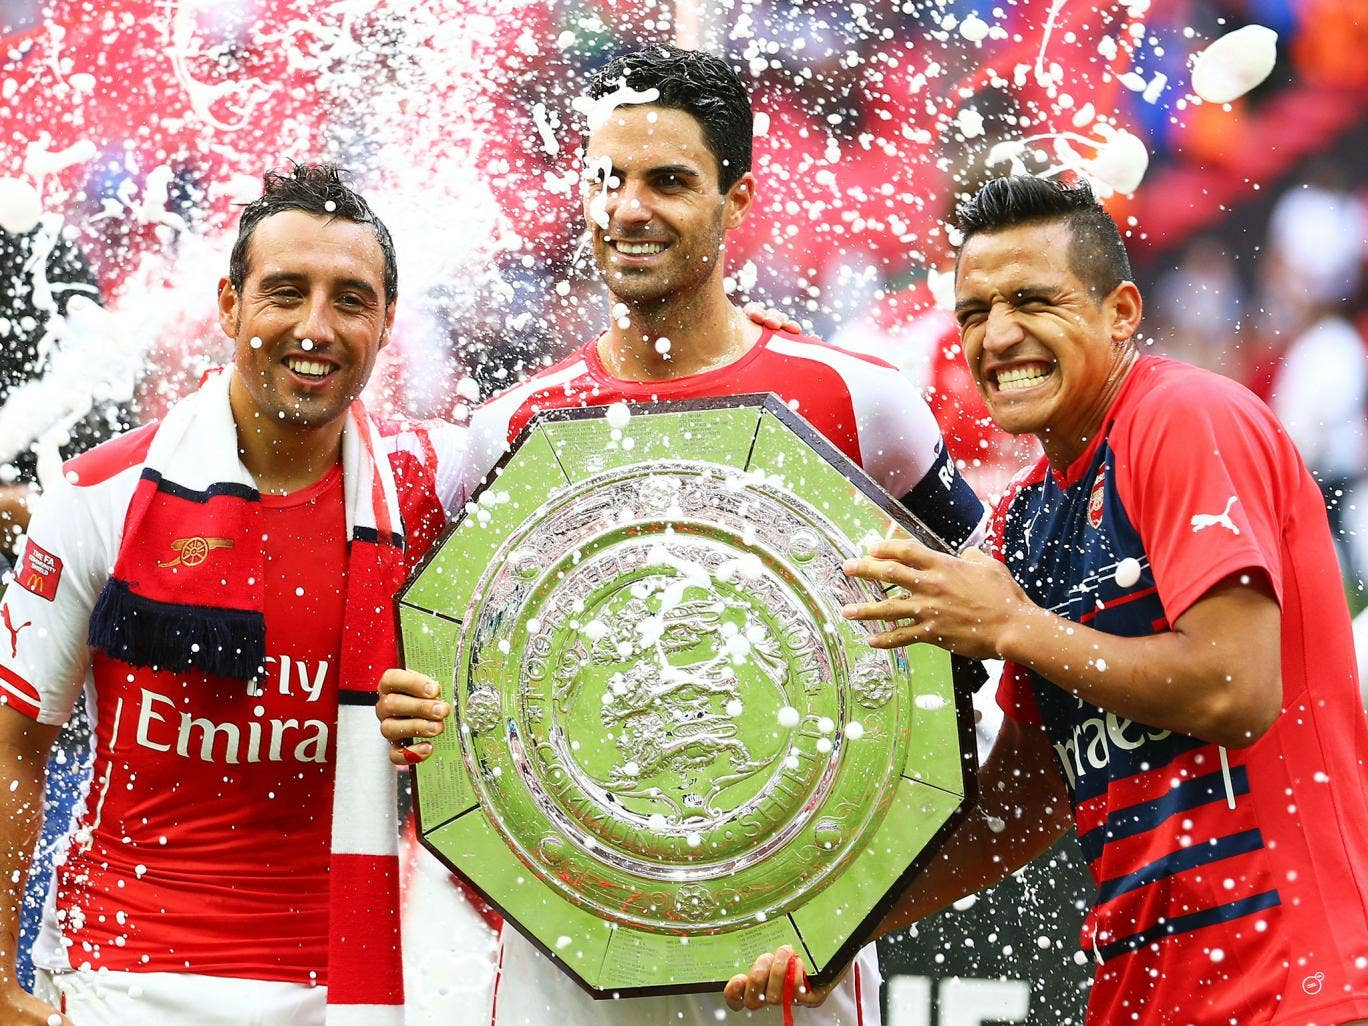 Mikel Arteta poses with the Community Shield alongside Santi Cazorla (left) and Alexis Sanchez (right)